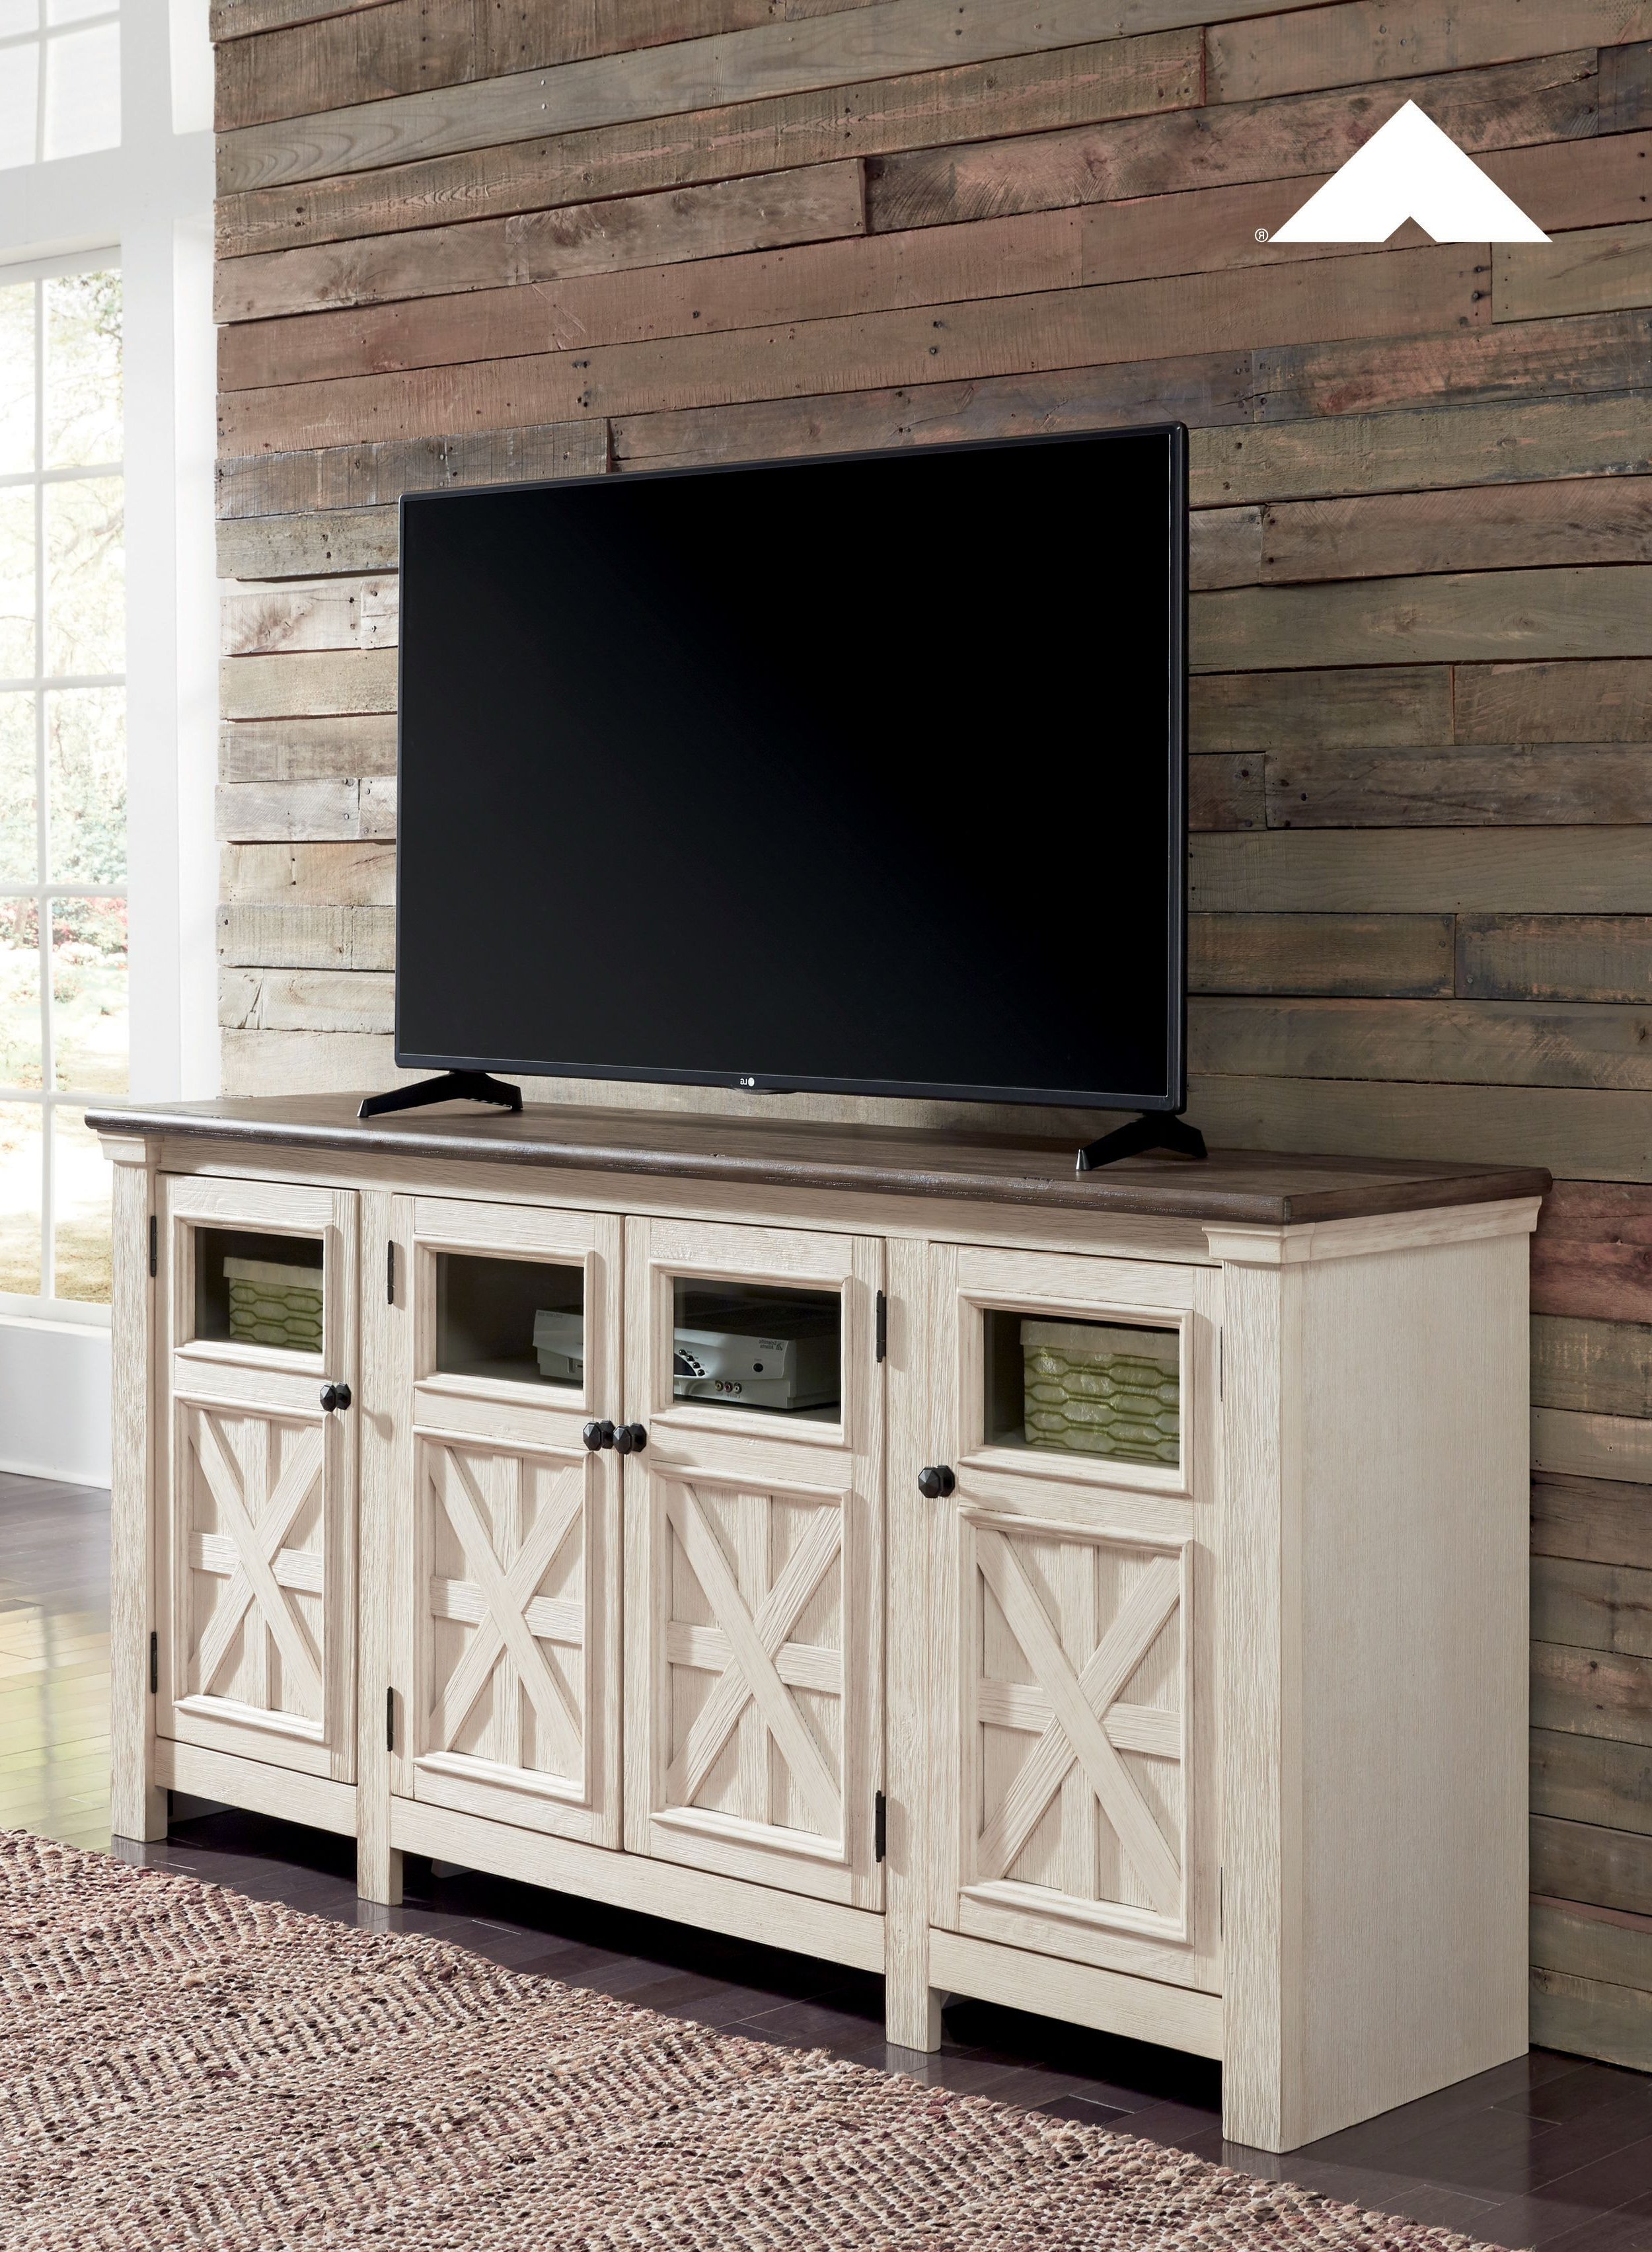 Fashionable White Wood Tv Stands Regarding Bolanburg Two Tone Antique White And Weathered Oak Extra Large Tv (Gallery 16 of 20)